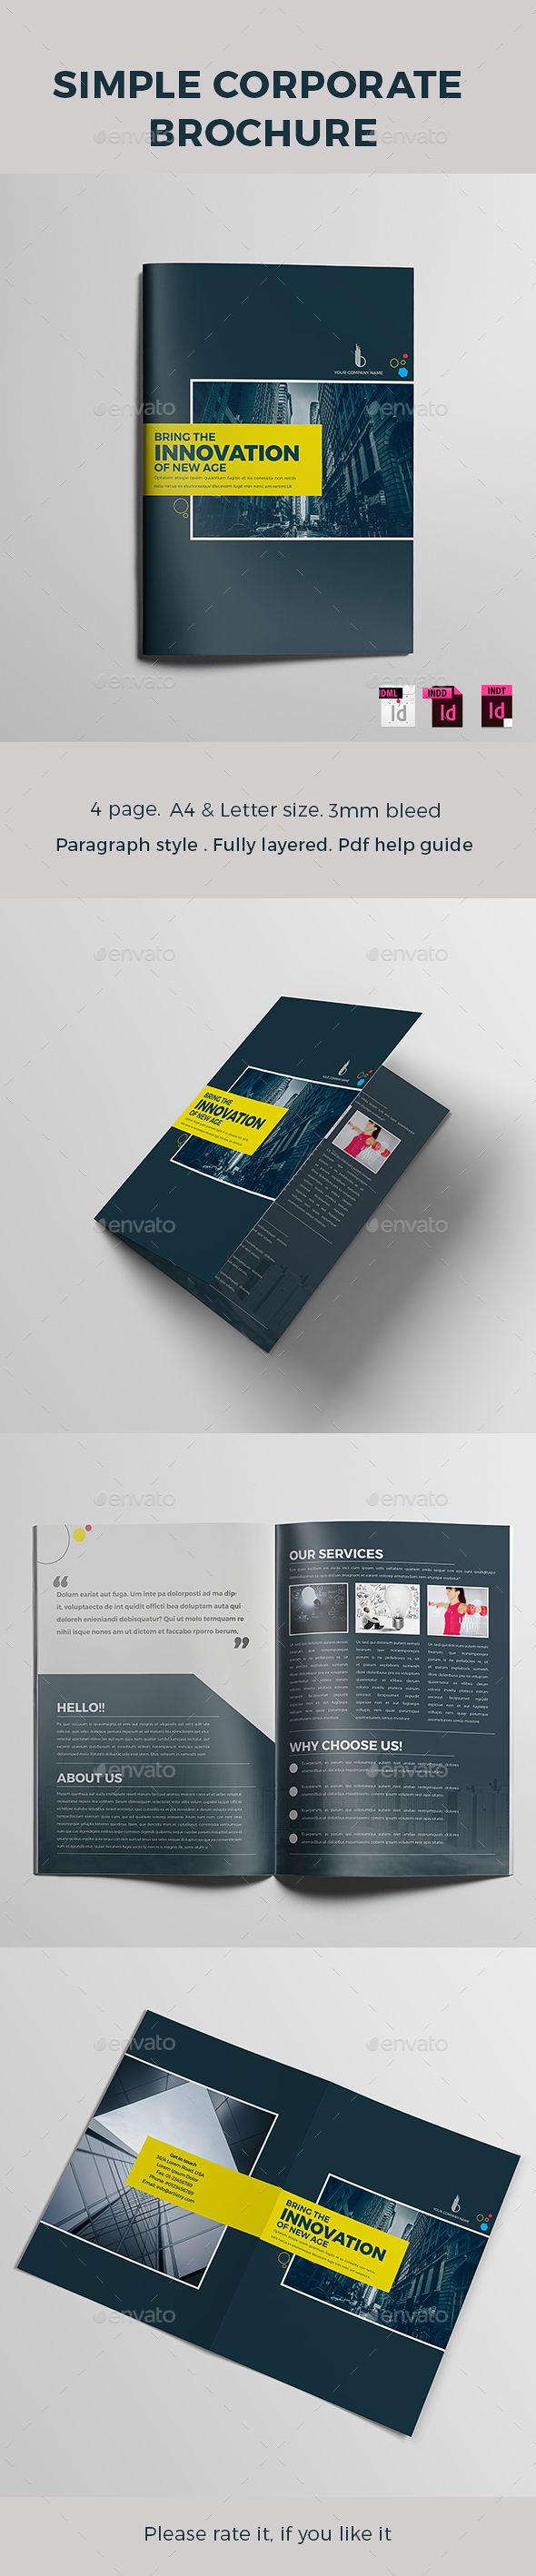 Simple Corporate Brochure Template Indesign Indd Download Here